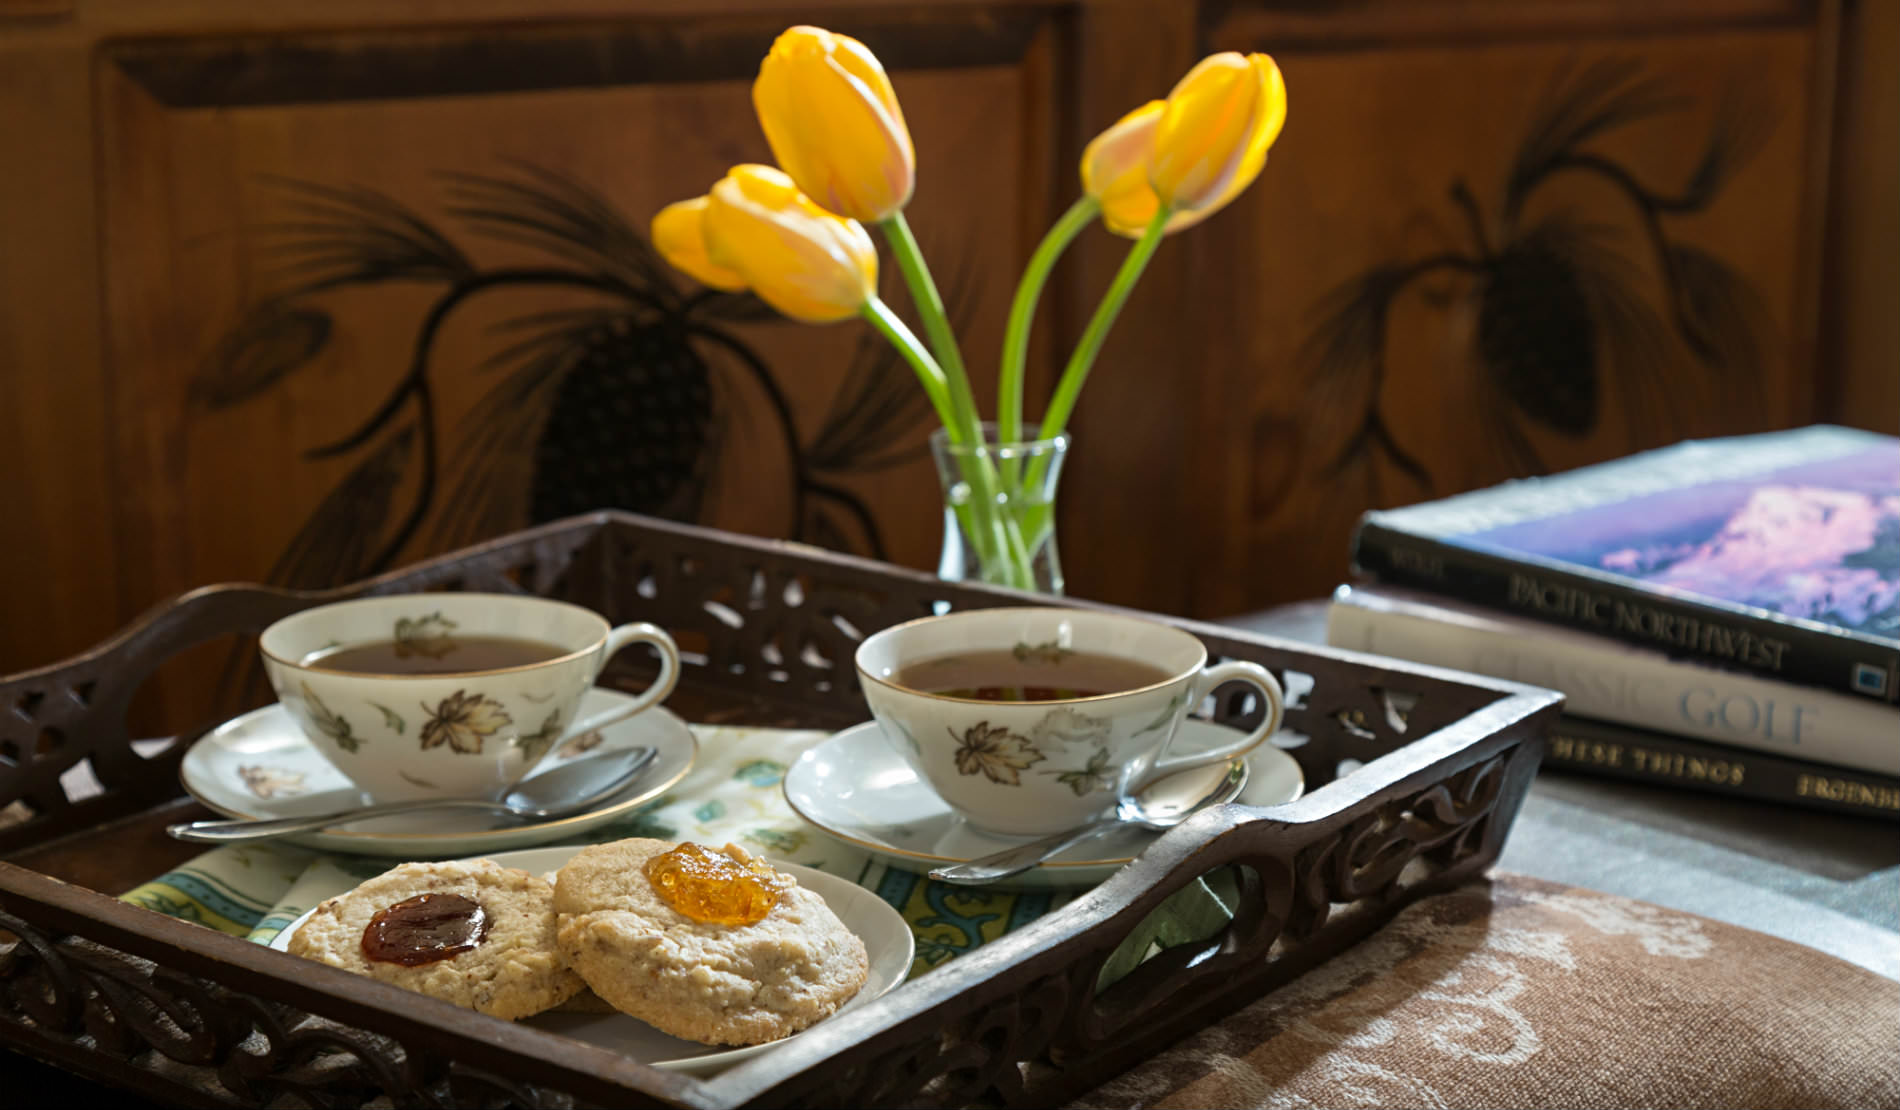 Cookies and tea on wooden server with yellow tulips and stack of books.